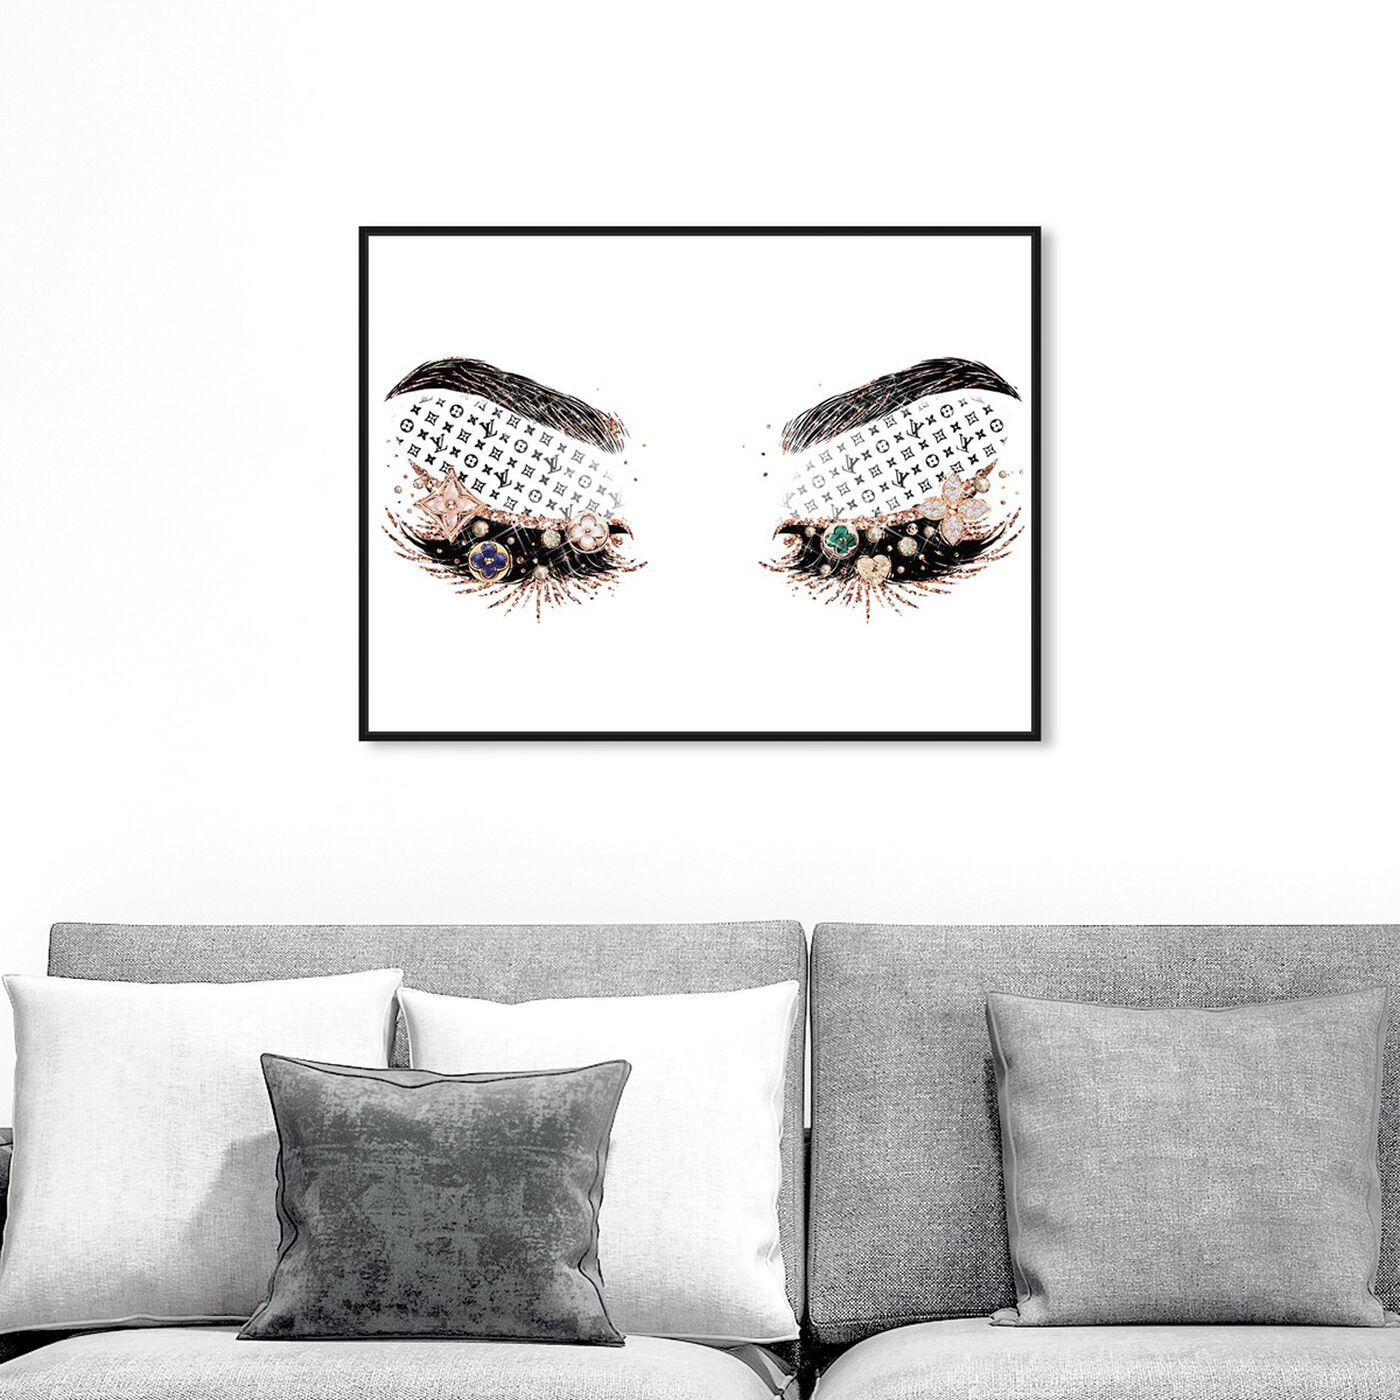 Hanging view of Louis Eyeshadows featuring fashion and glam and makeup art.